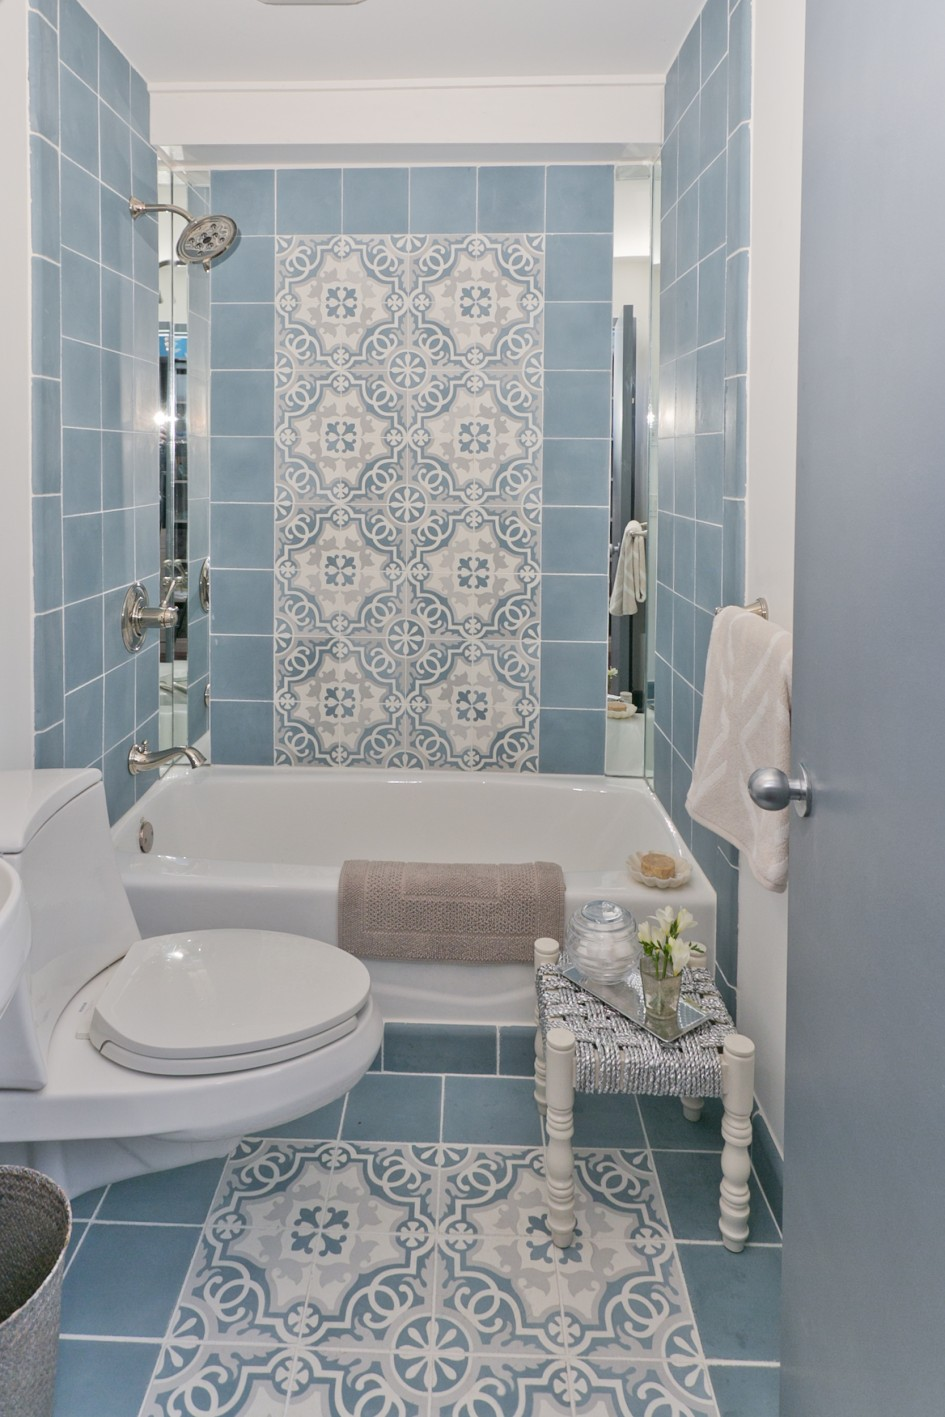 40 vintage blue bathroom tiles ideas and pictures for Accessoire salle de bain bleu